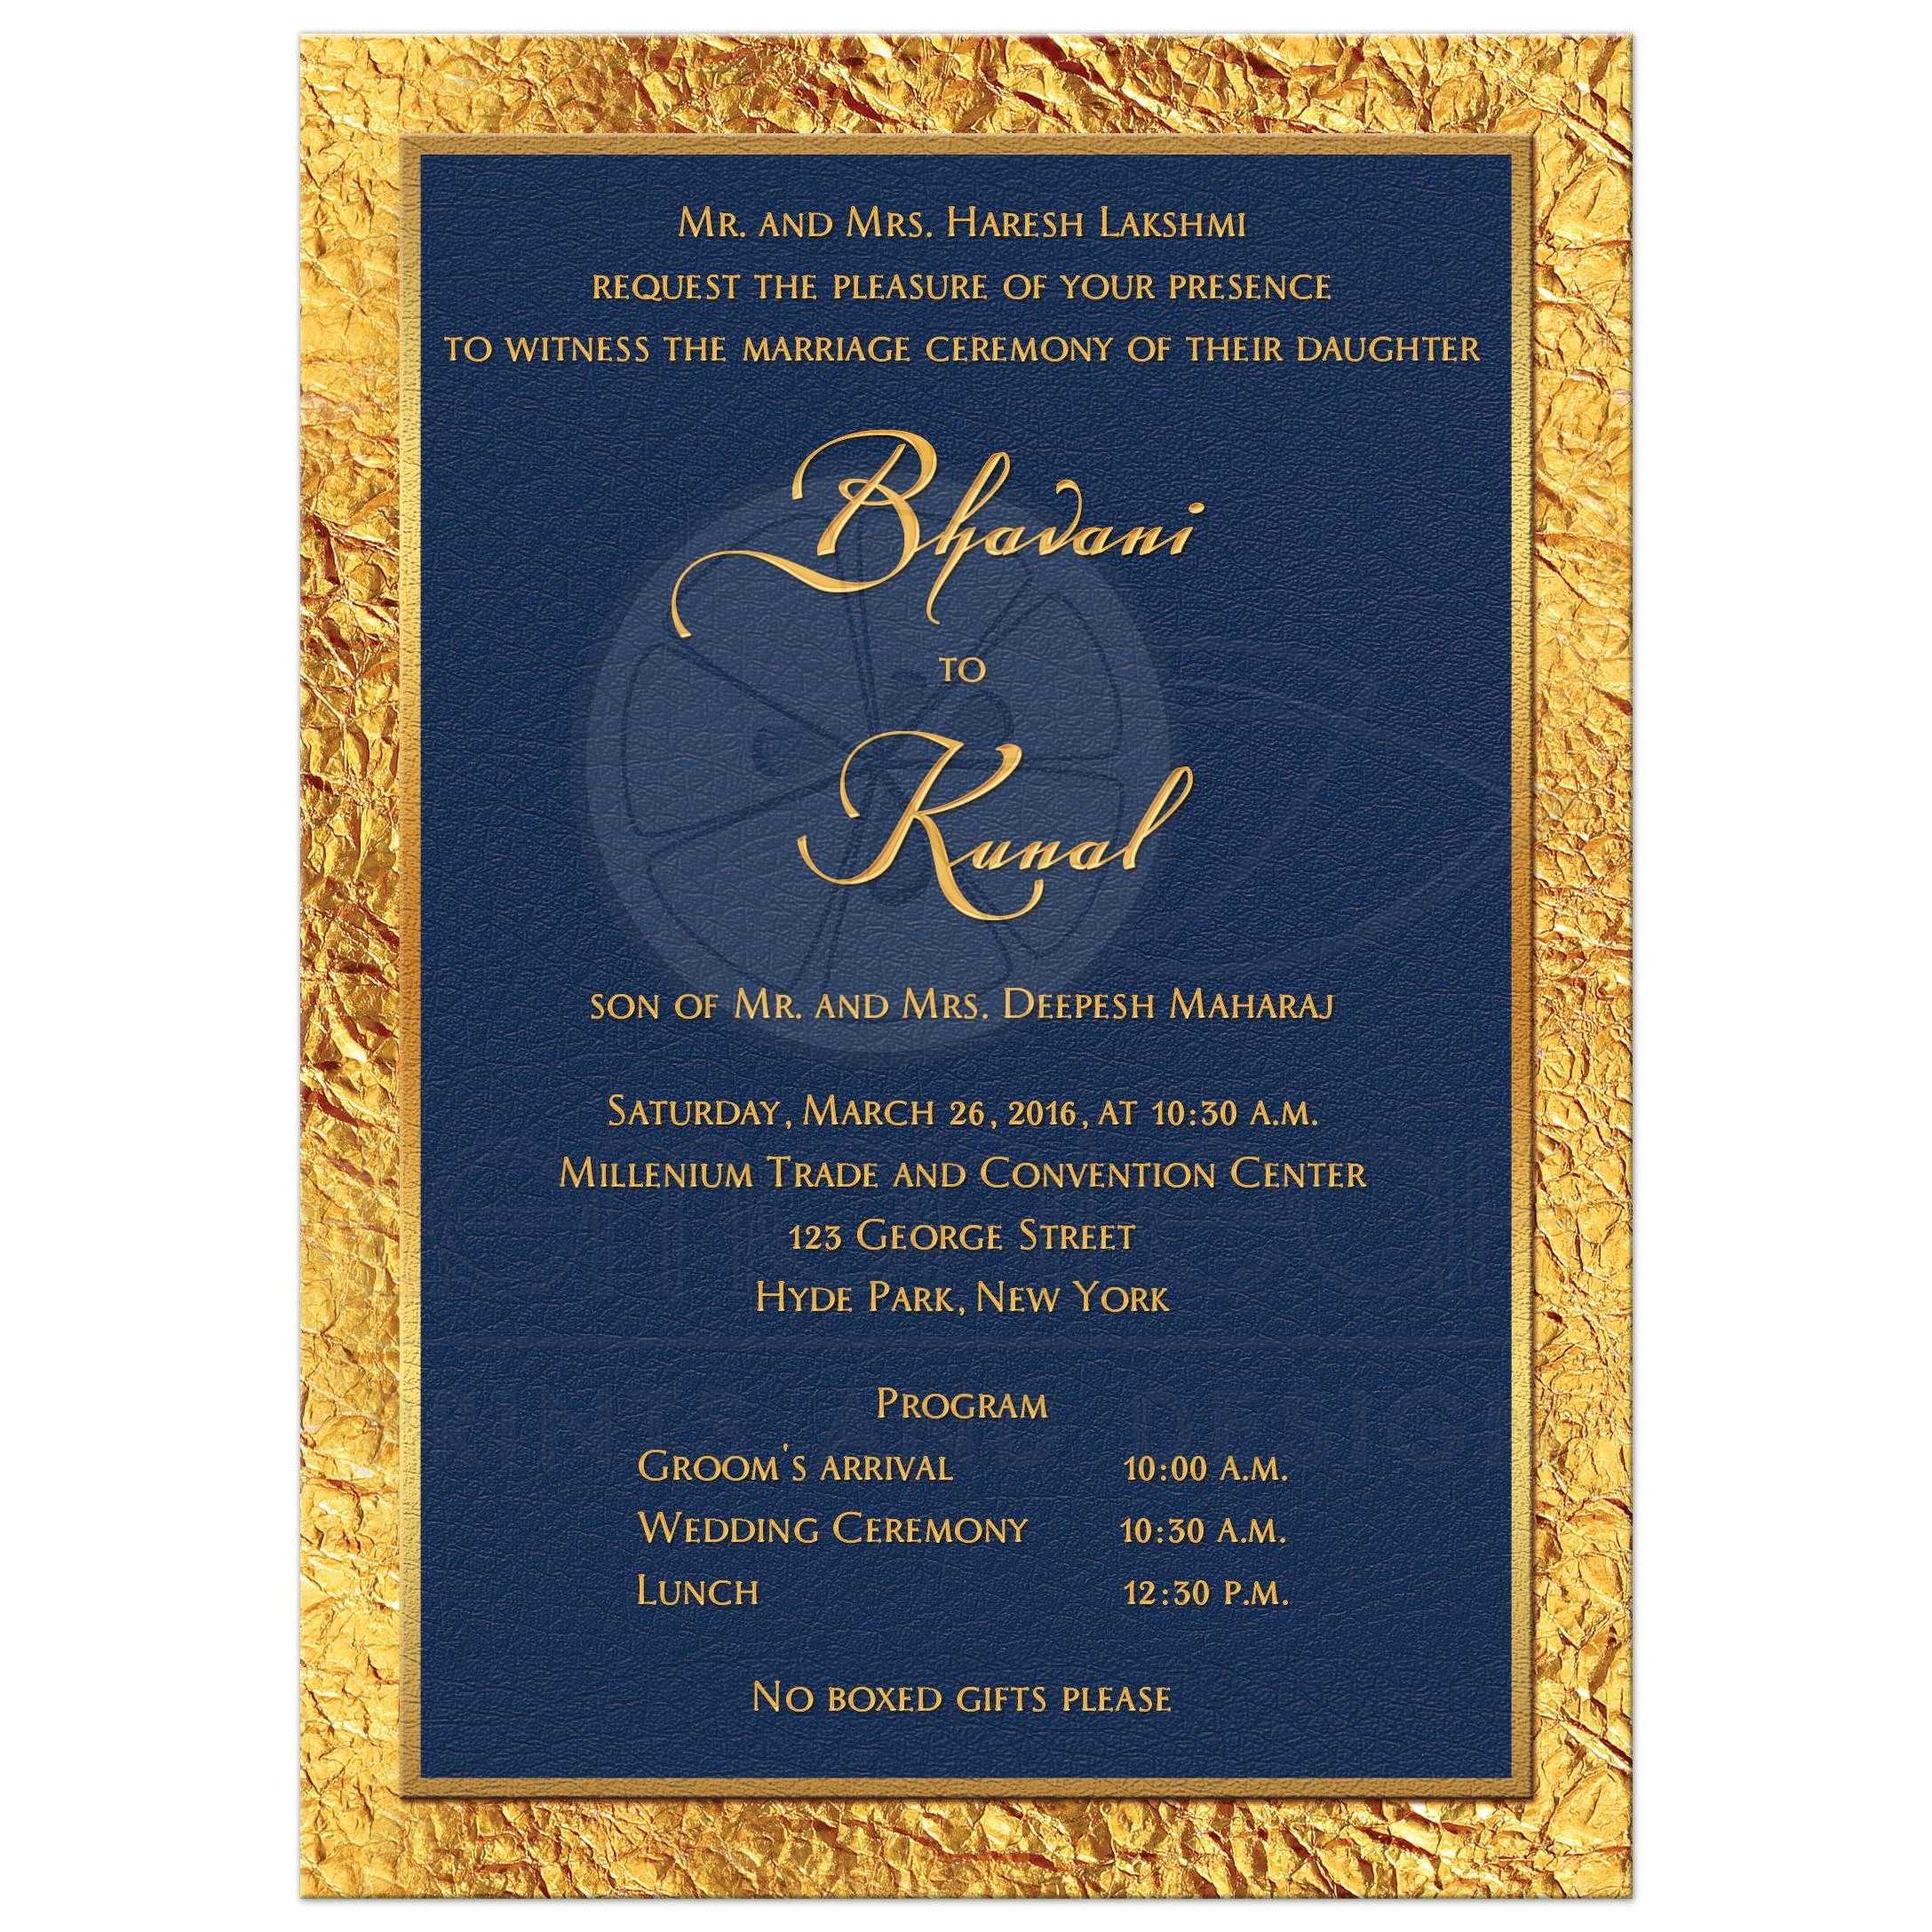 Wedding Invitation | Watercolor | Gold Flourish | Faux Gold Foil ...